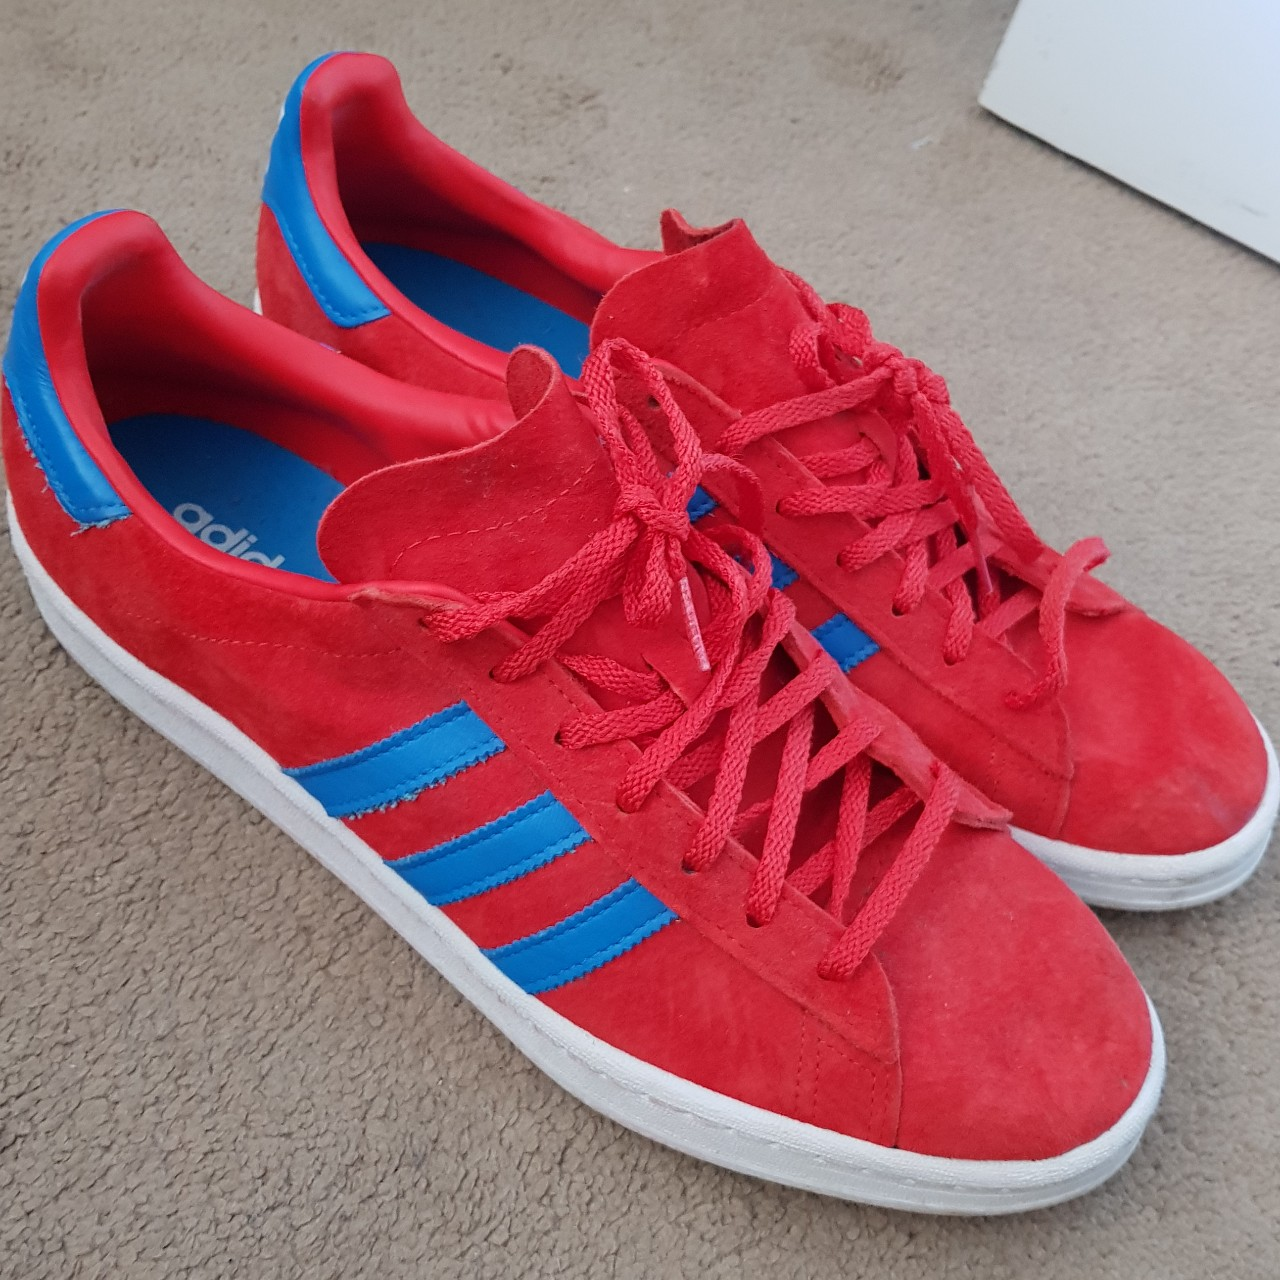 Adidas red trainers with blue stripes hardley worn...